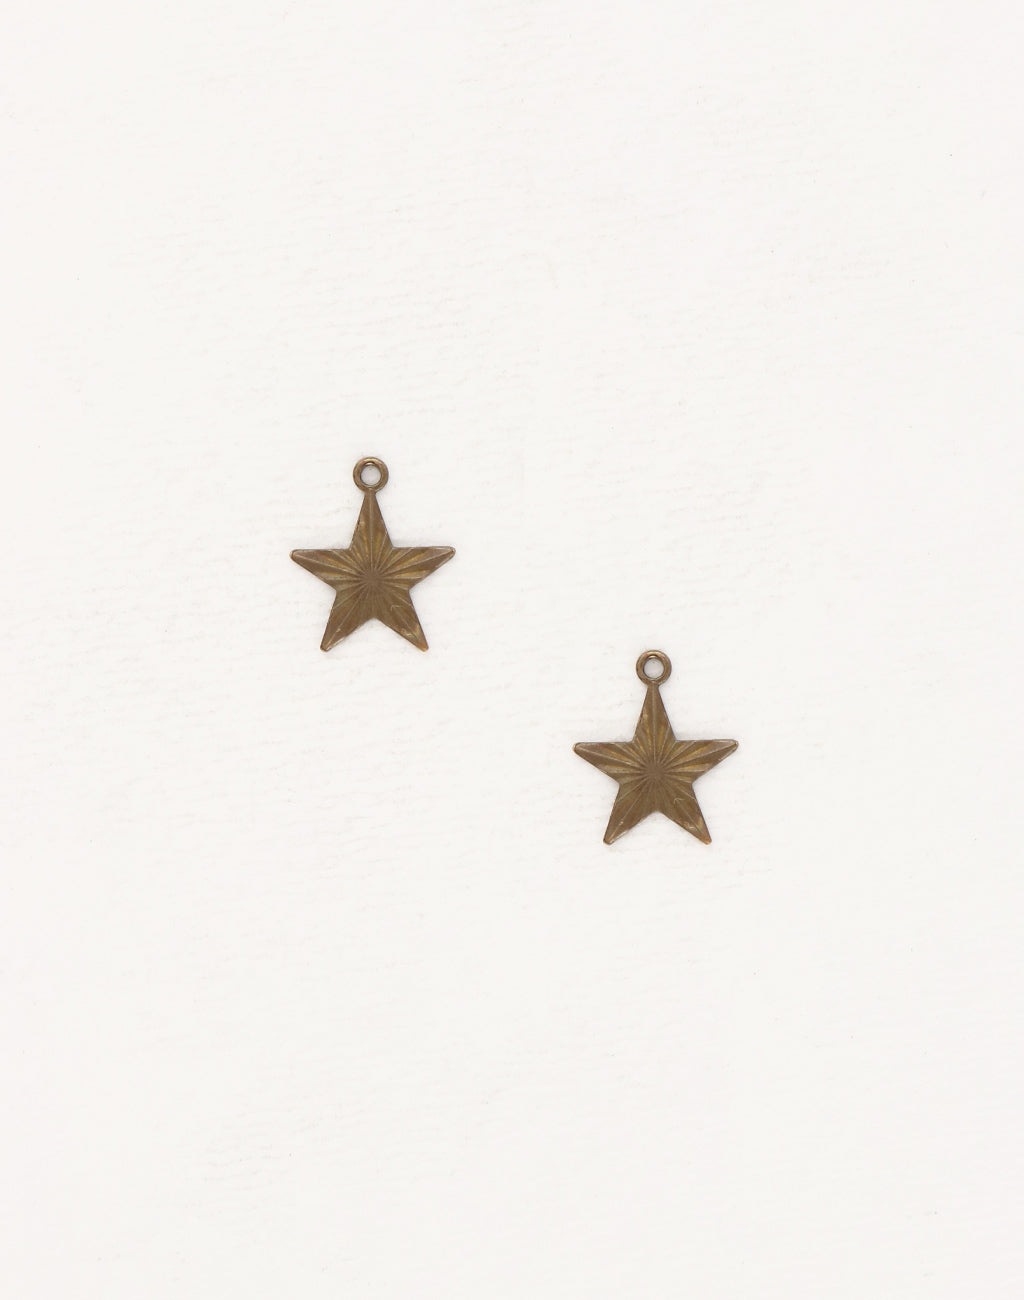 Etched Star Charm, 14x13mm, (2pcs)